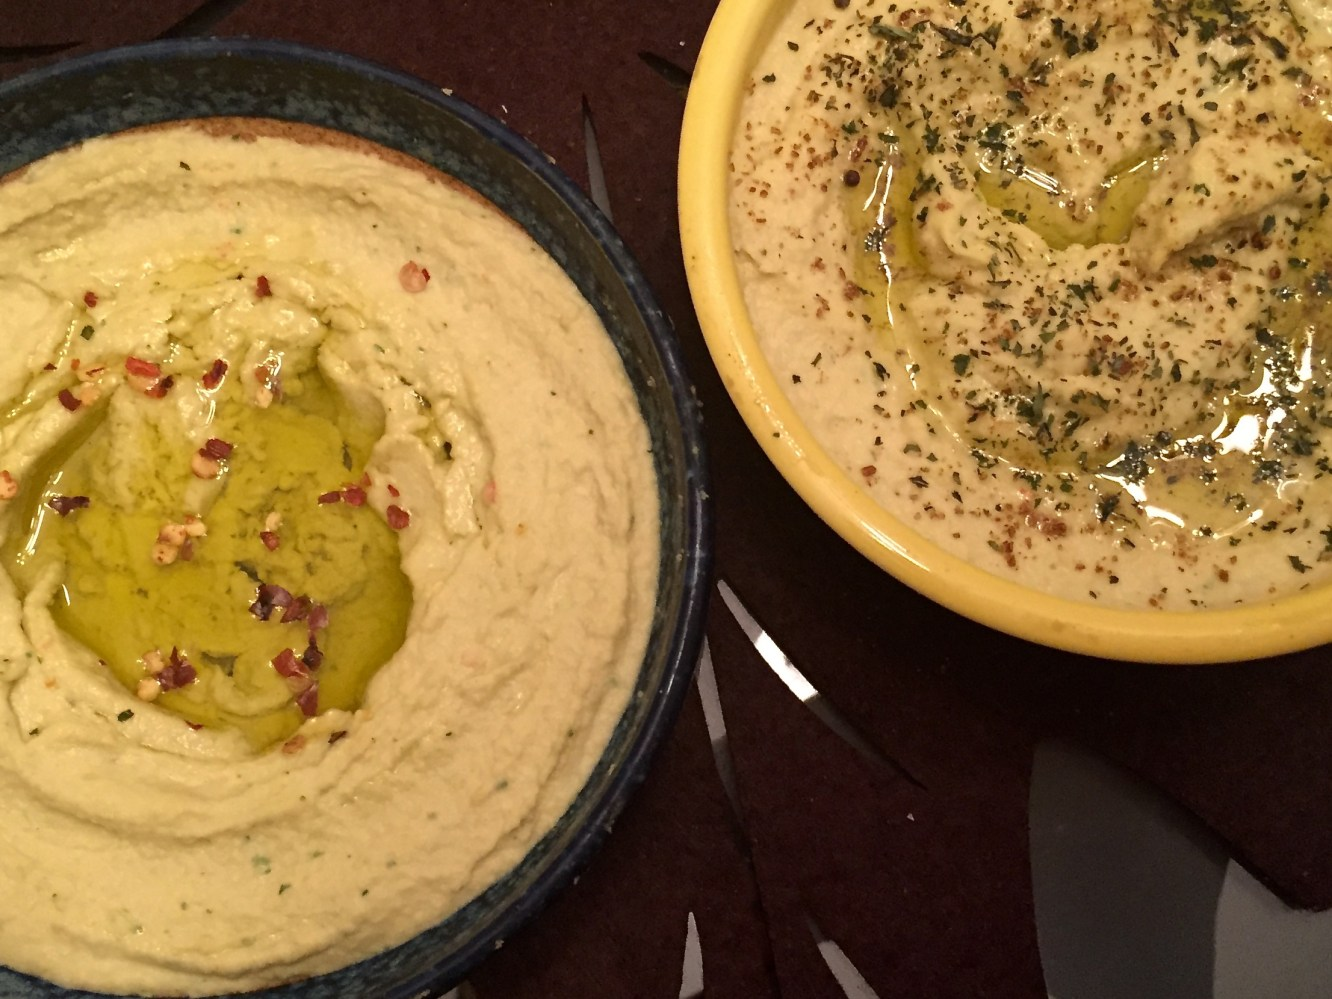 How To Make Hummus From Chickpeas In A Can